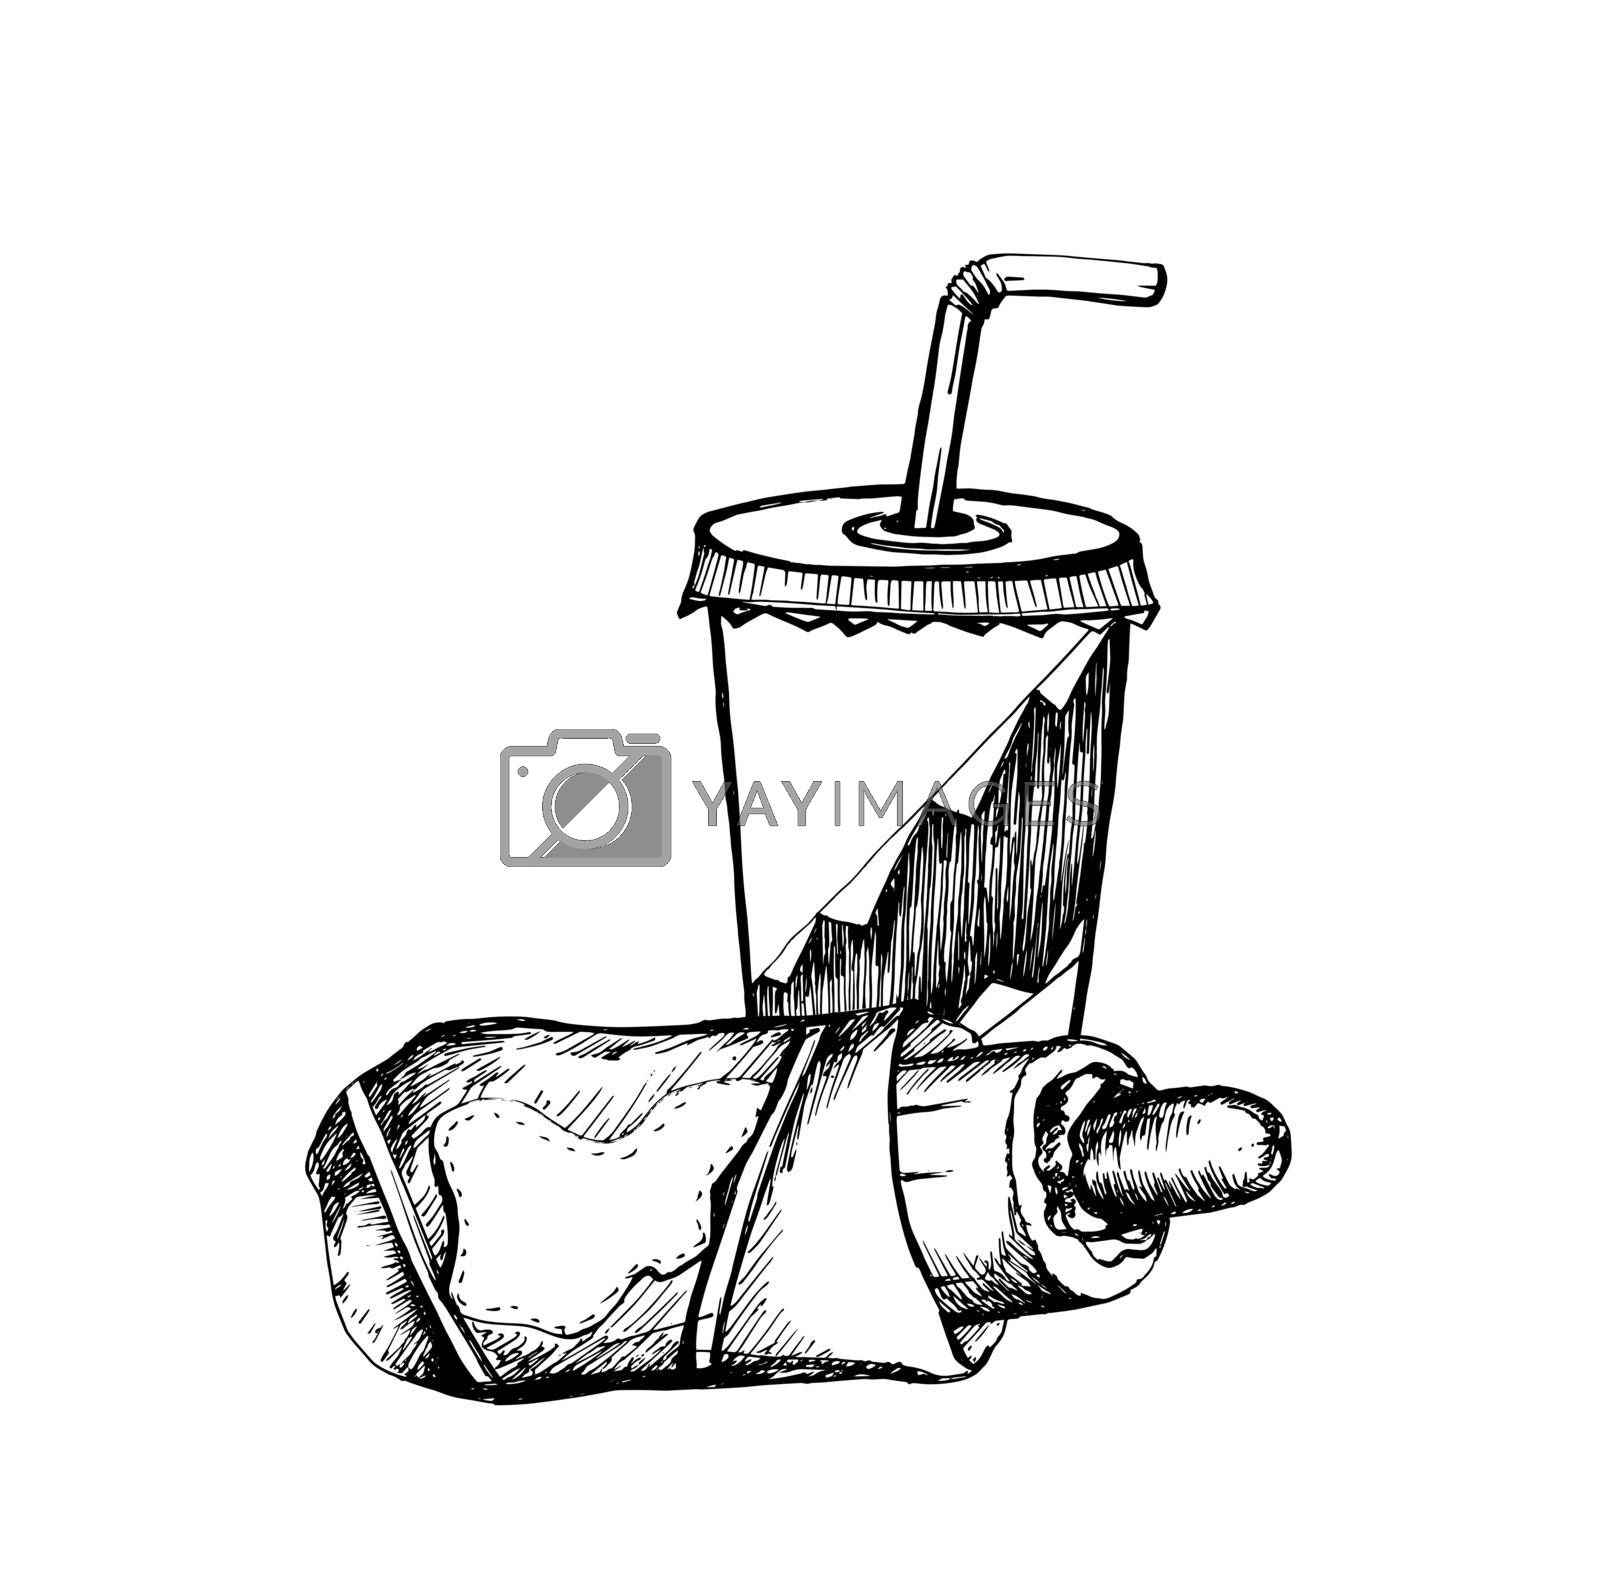 Hand Drawn Sketch of Soda Cup with Straw and Hot Dog. Vintage Sketch. Great for Banner, Label, Poster